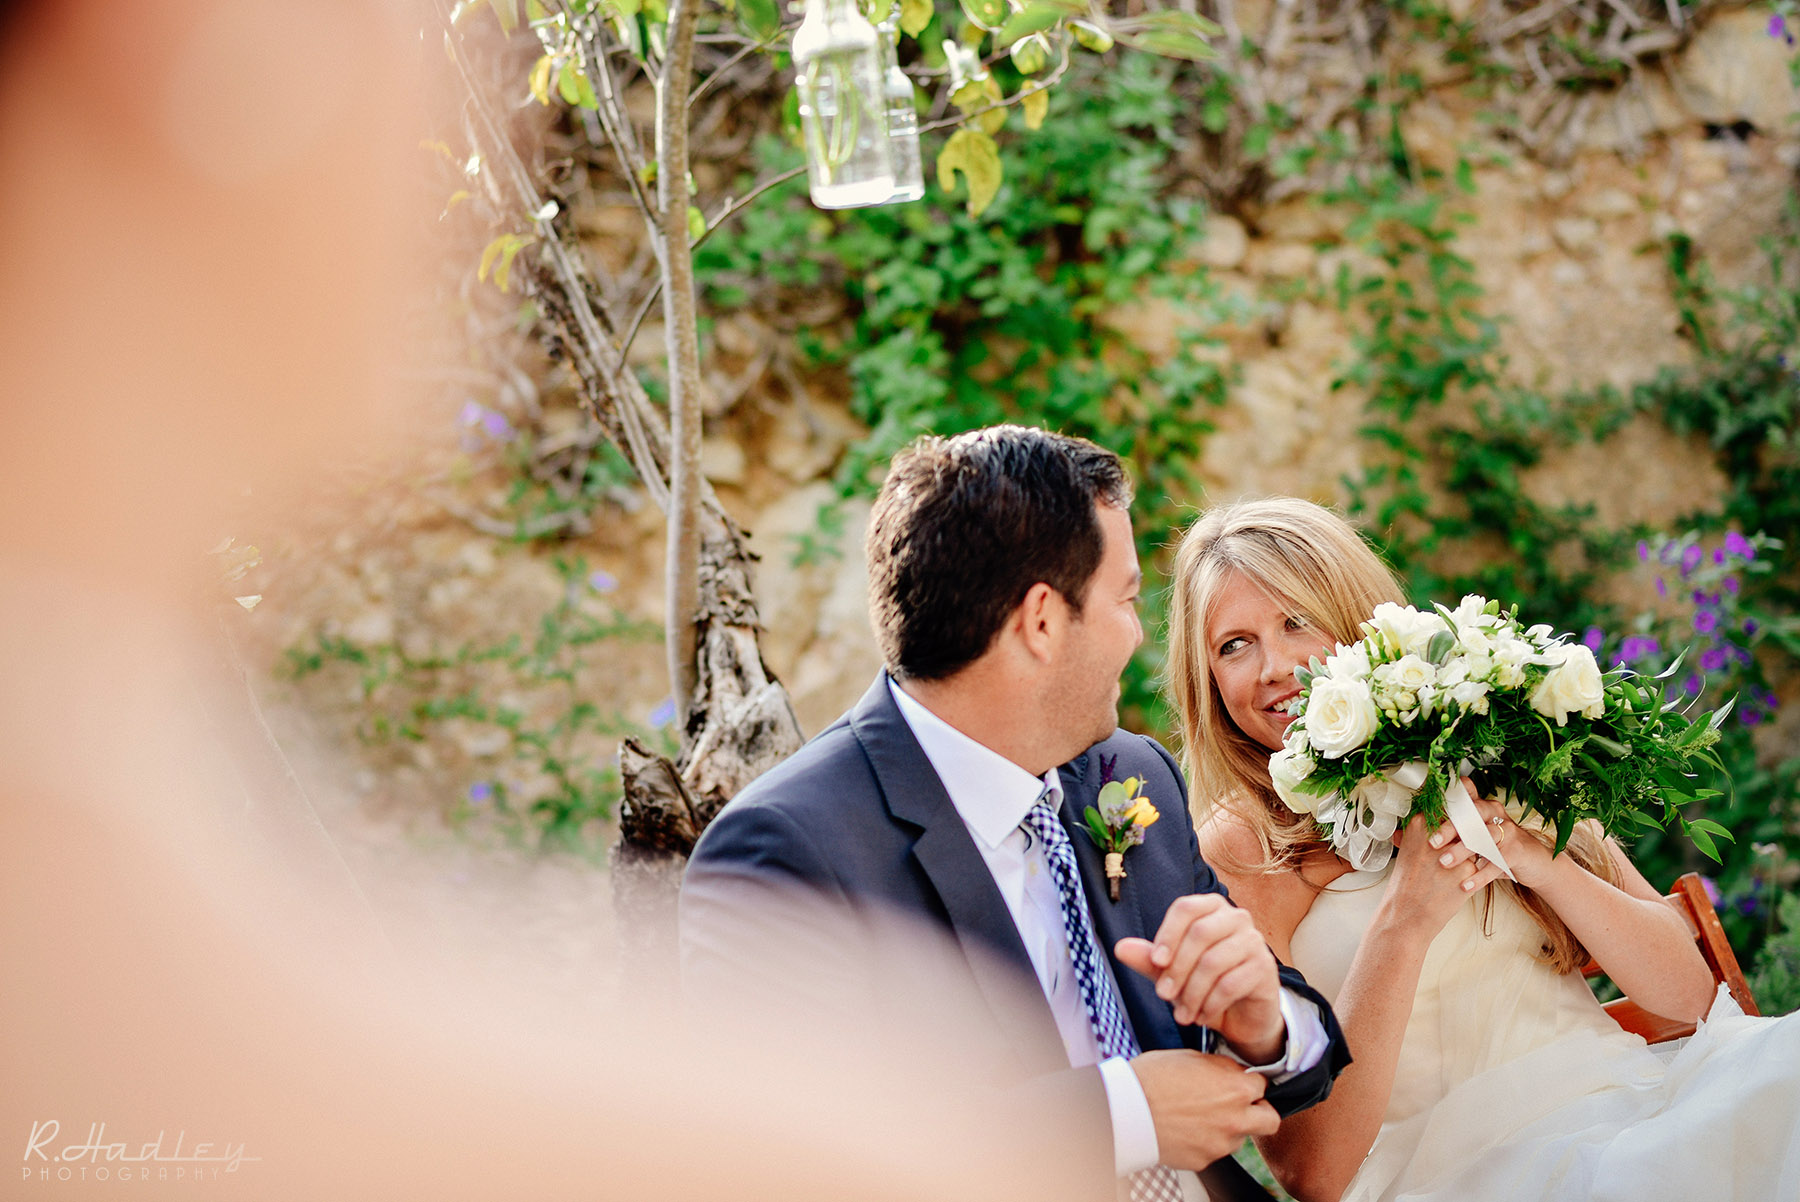 An amazing wedding at Casa Felix, Sitges, near Barcelona